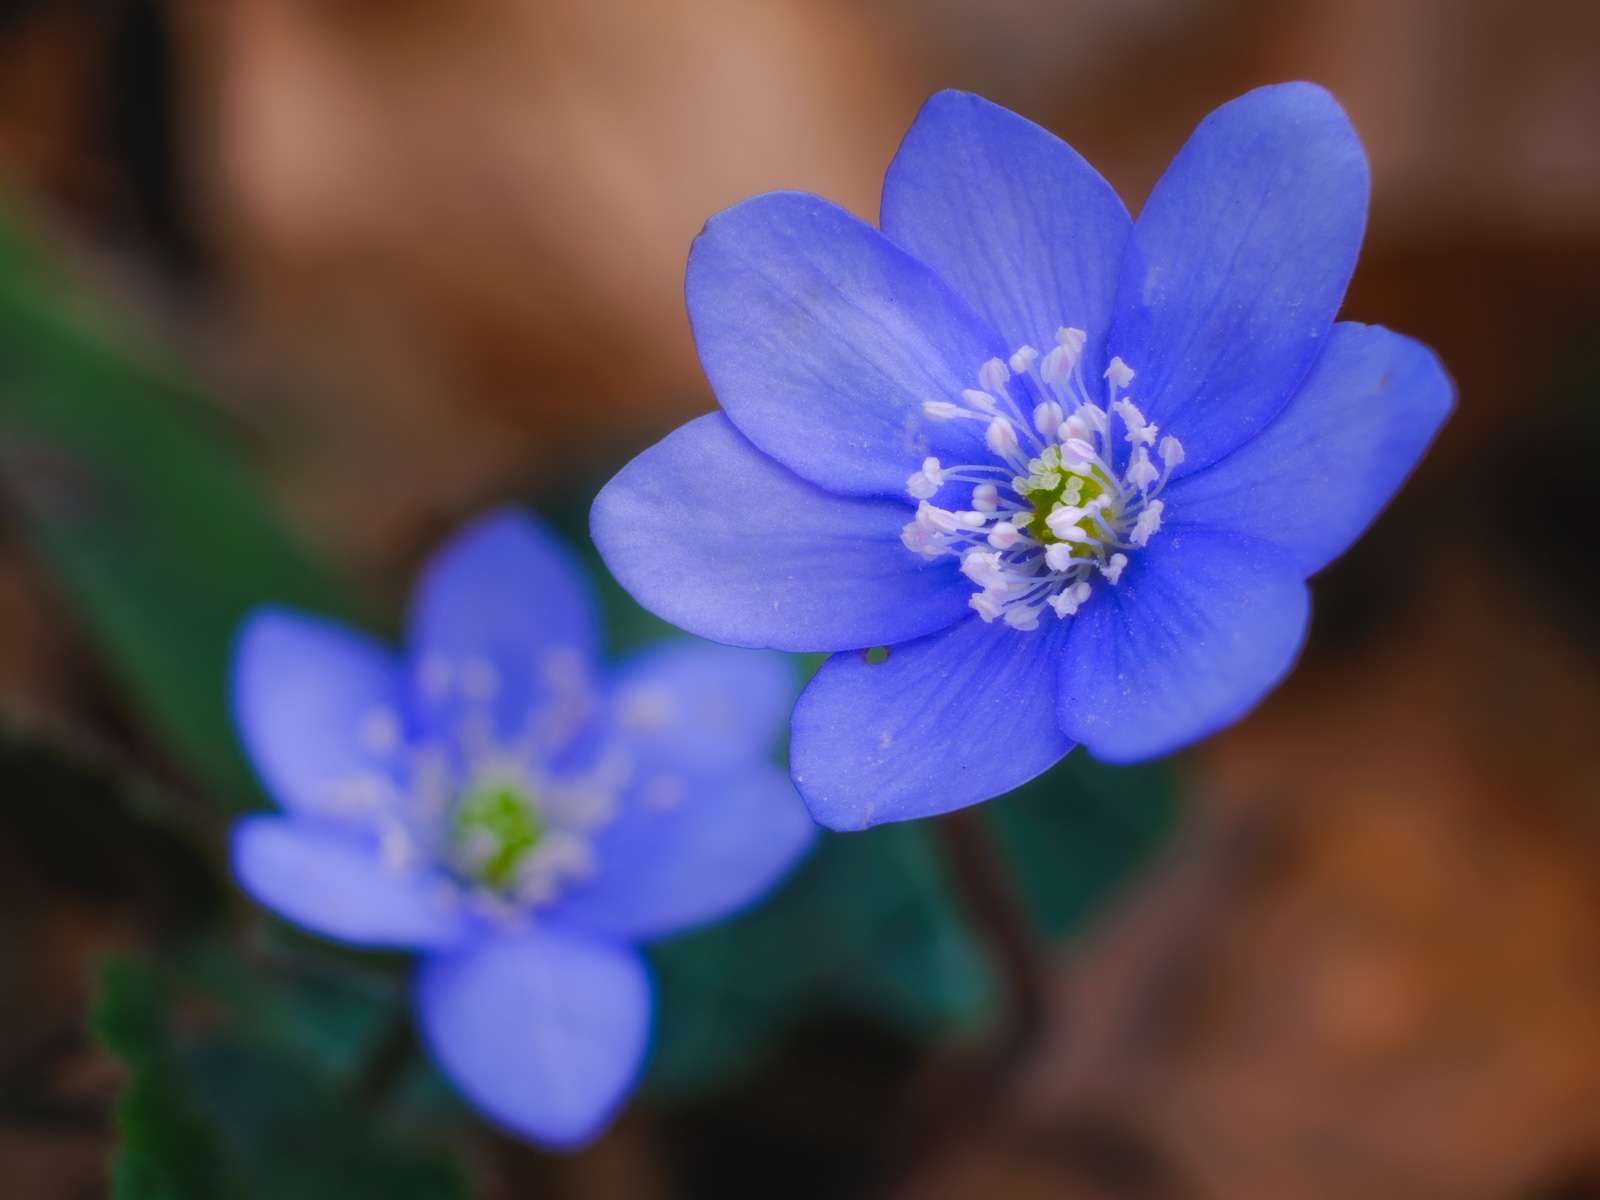 Liverwort blossoms (Hepatica nobilis) in the Teutoburg Forest (Bielefeld-Quelle, Germany).